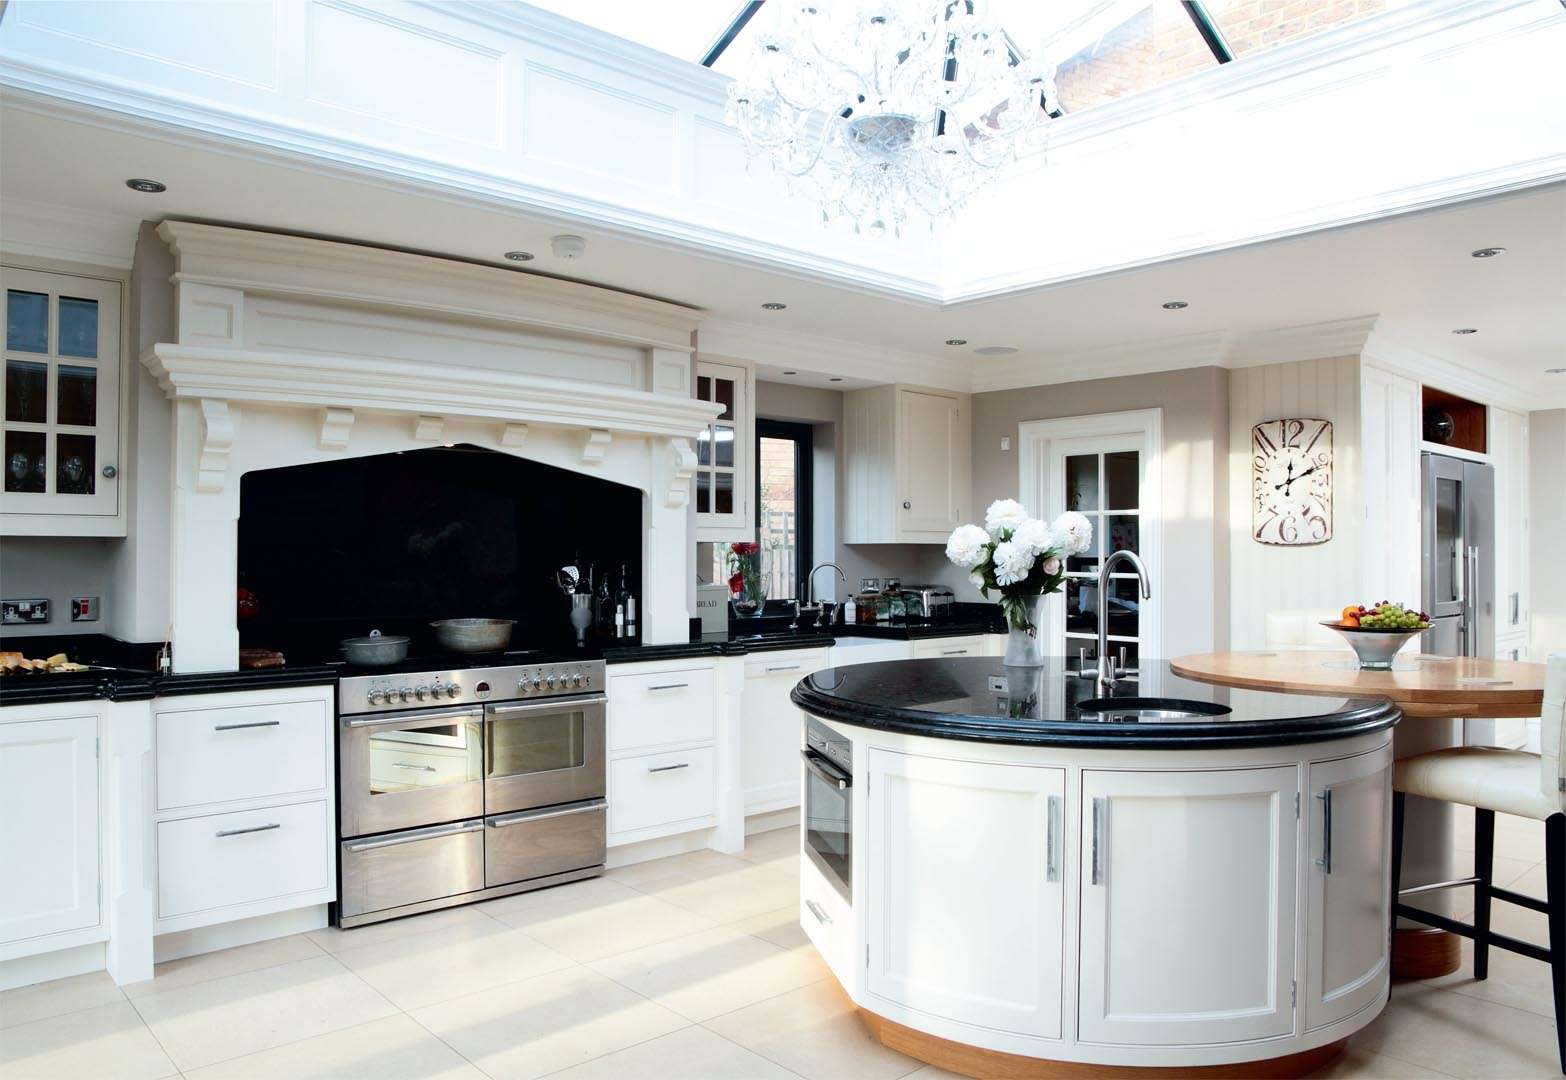 A light-filled kitchen extension with a glass roof | Real Homes